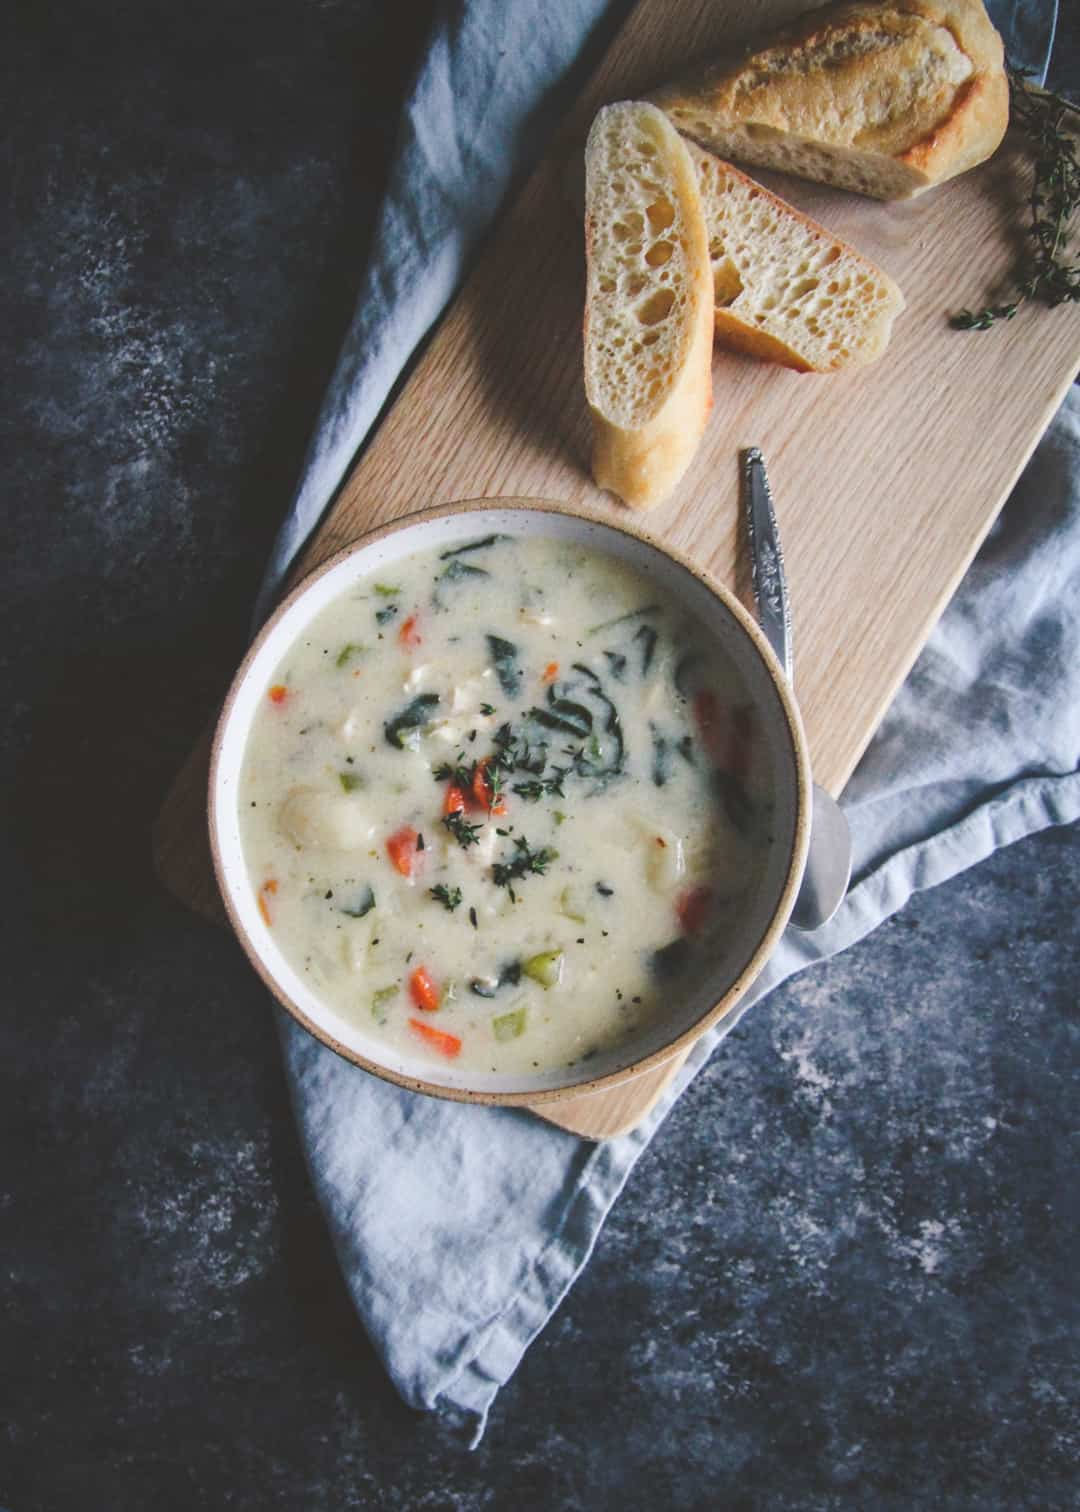 Healthy instant pot creamy chicken gnocchi soup, the most delicious easy healthy family dinner recipe